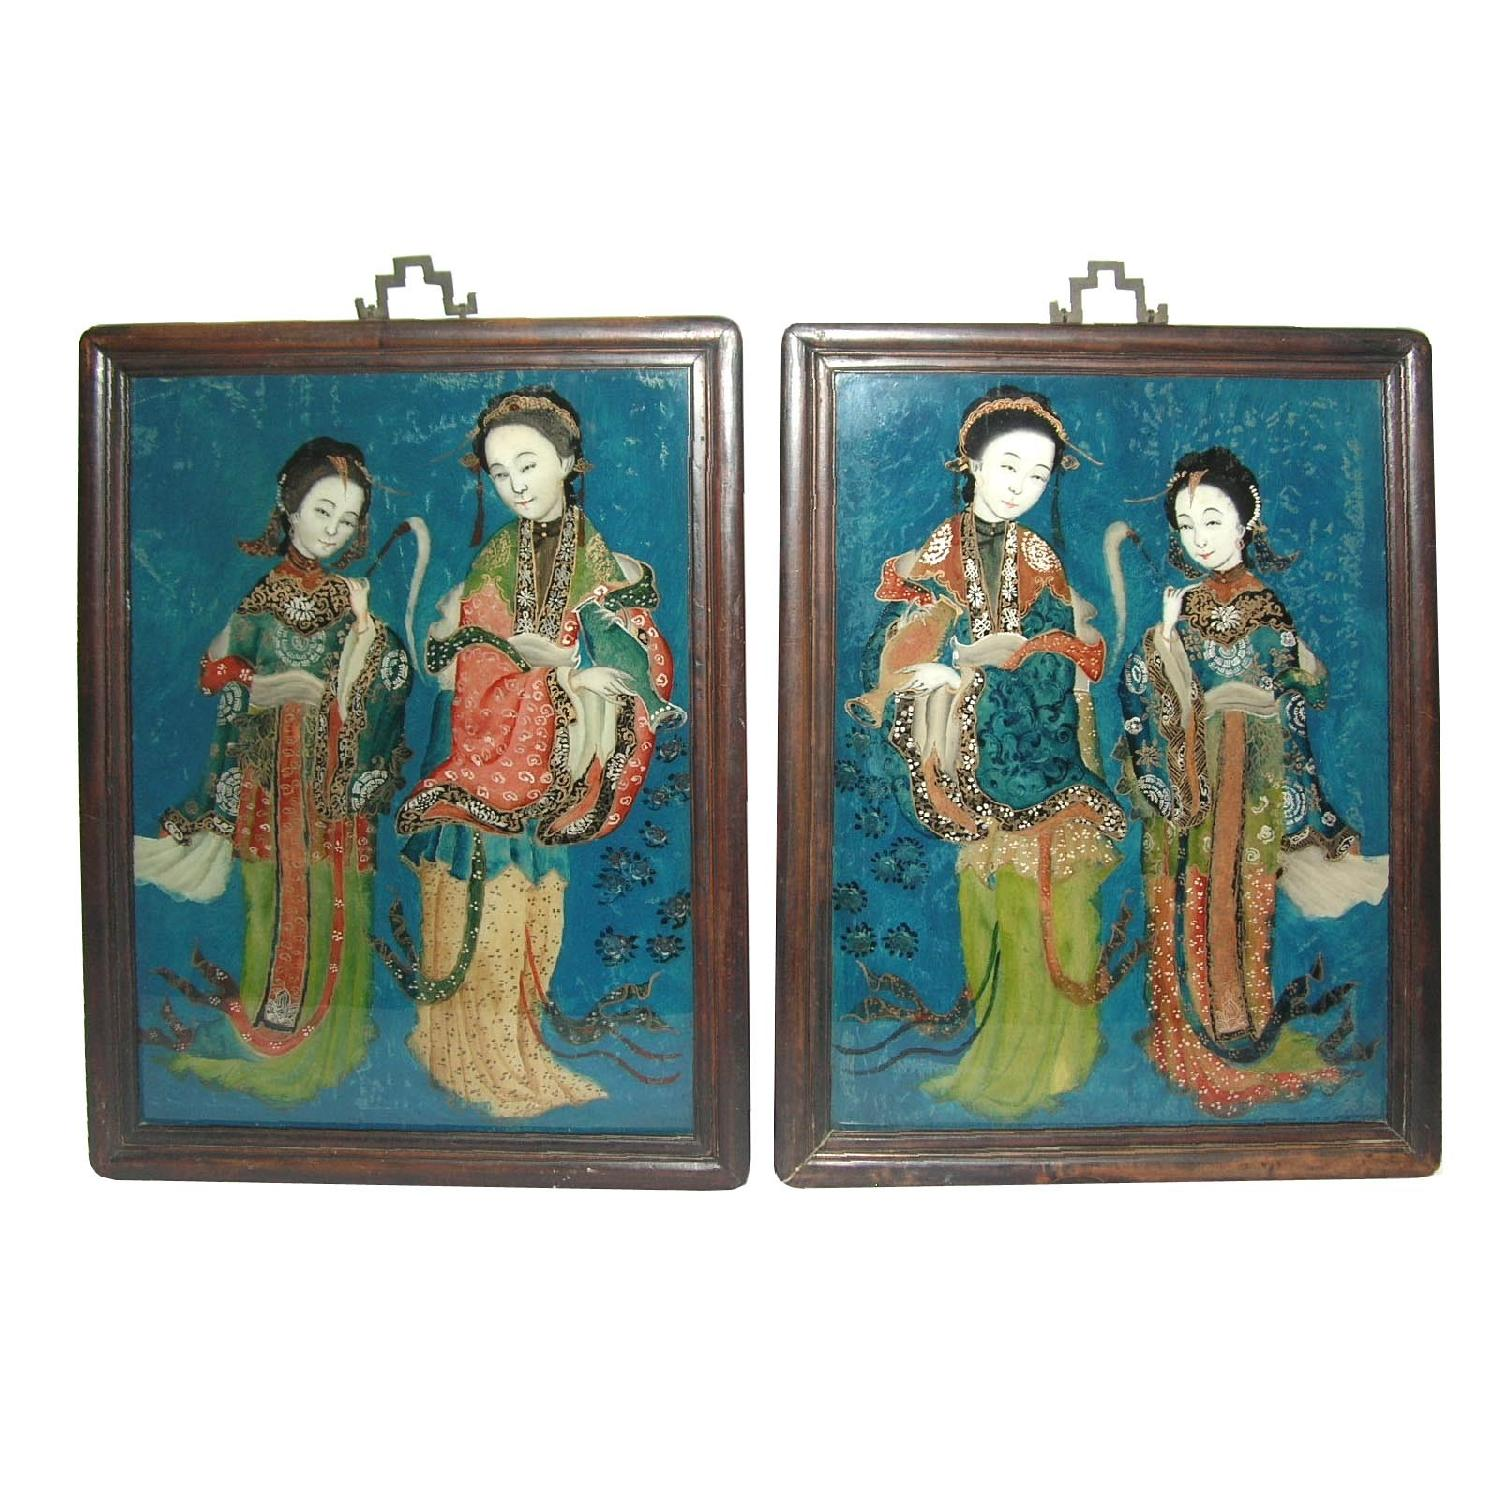 Antique Chinese Reverse Glass Paintings of Beauties